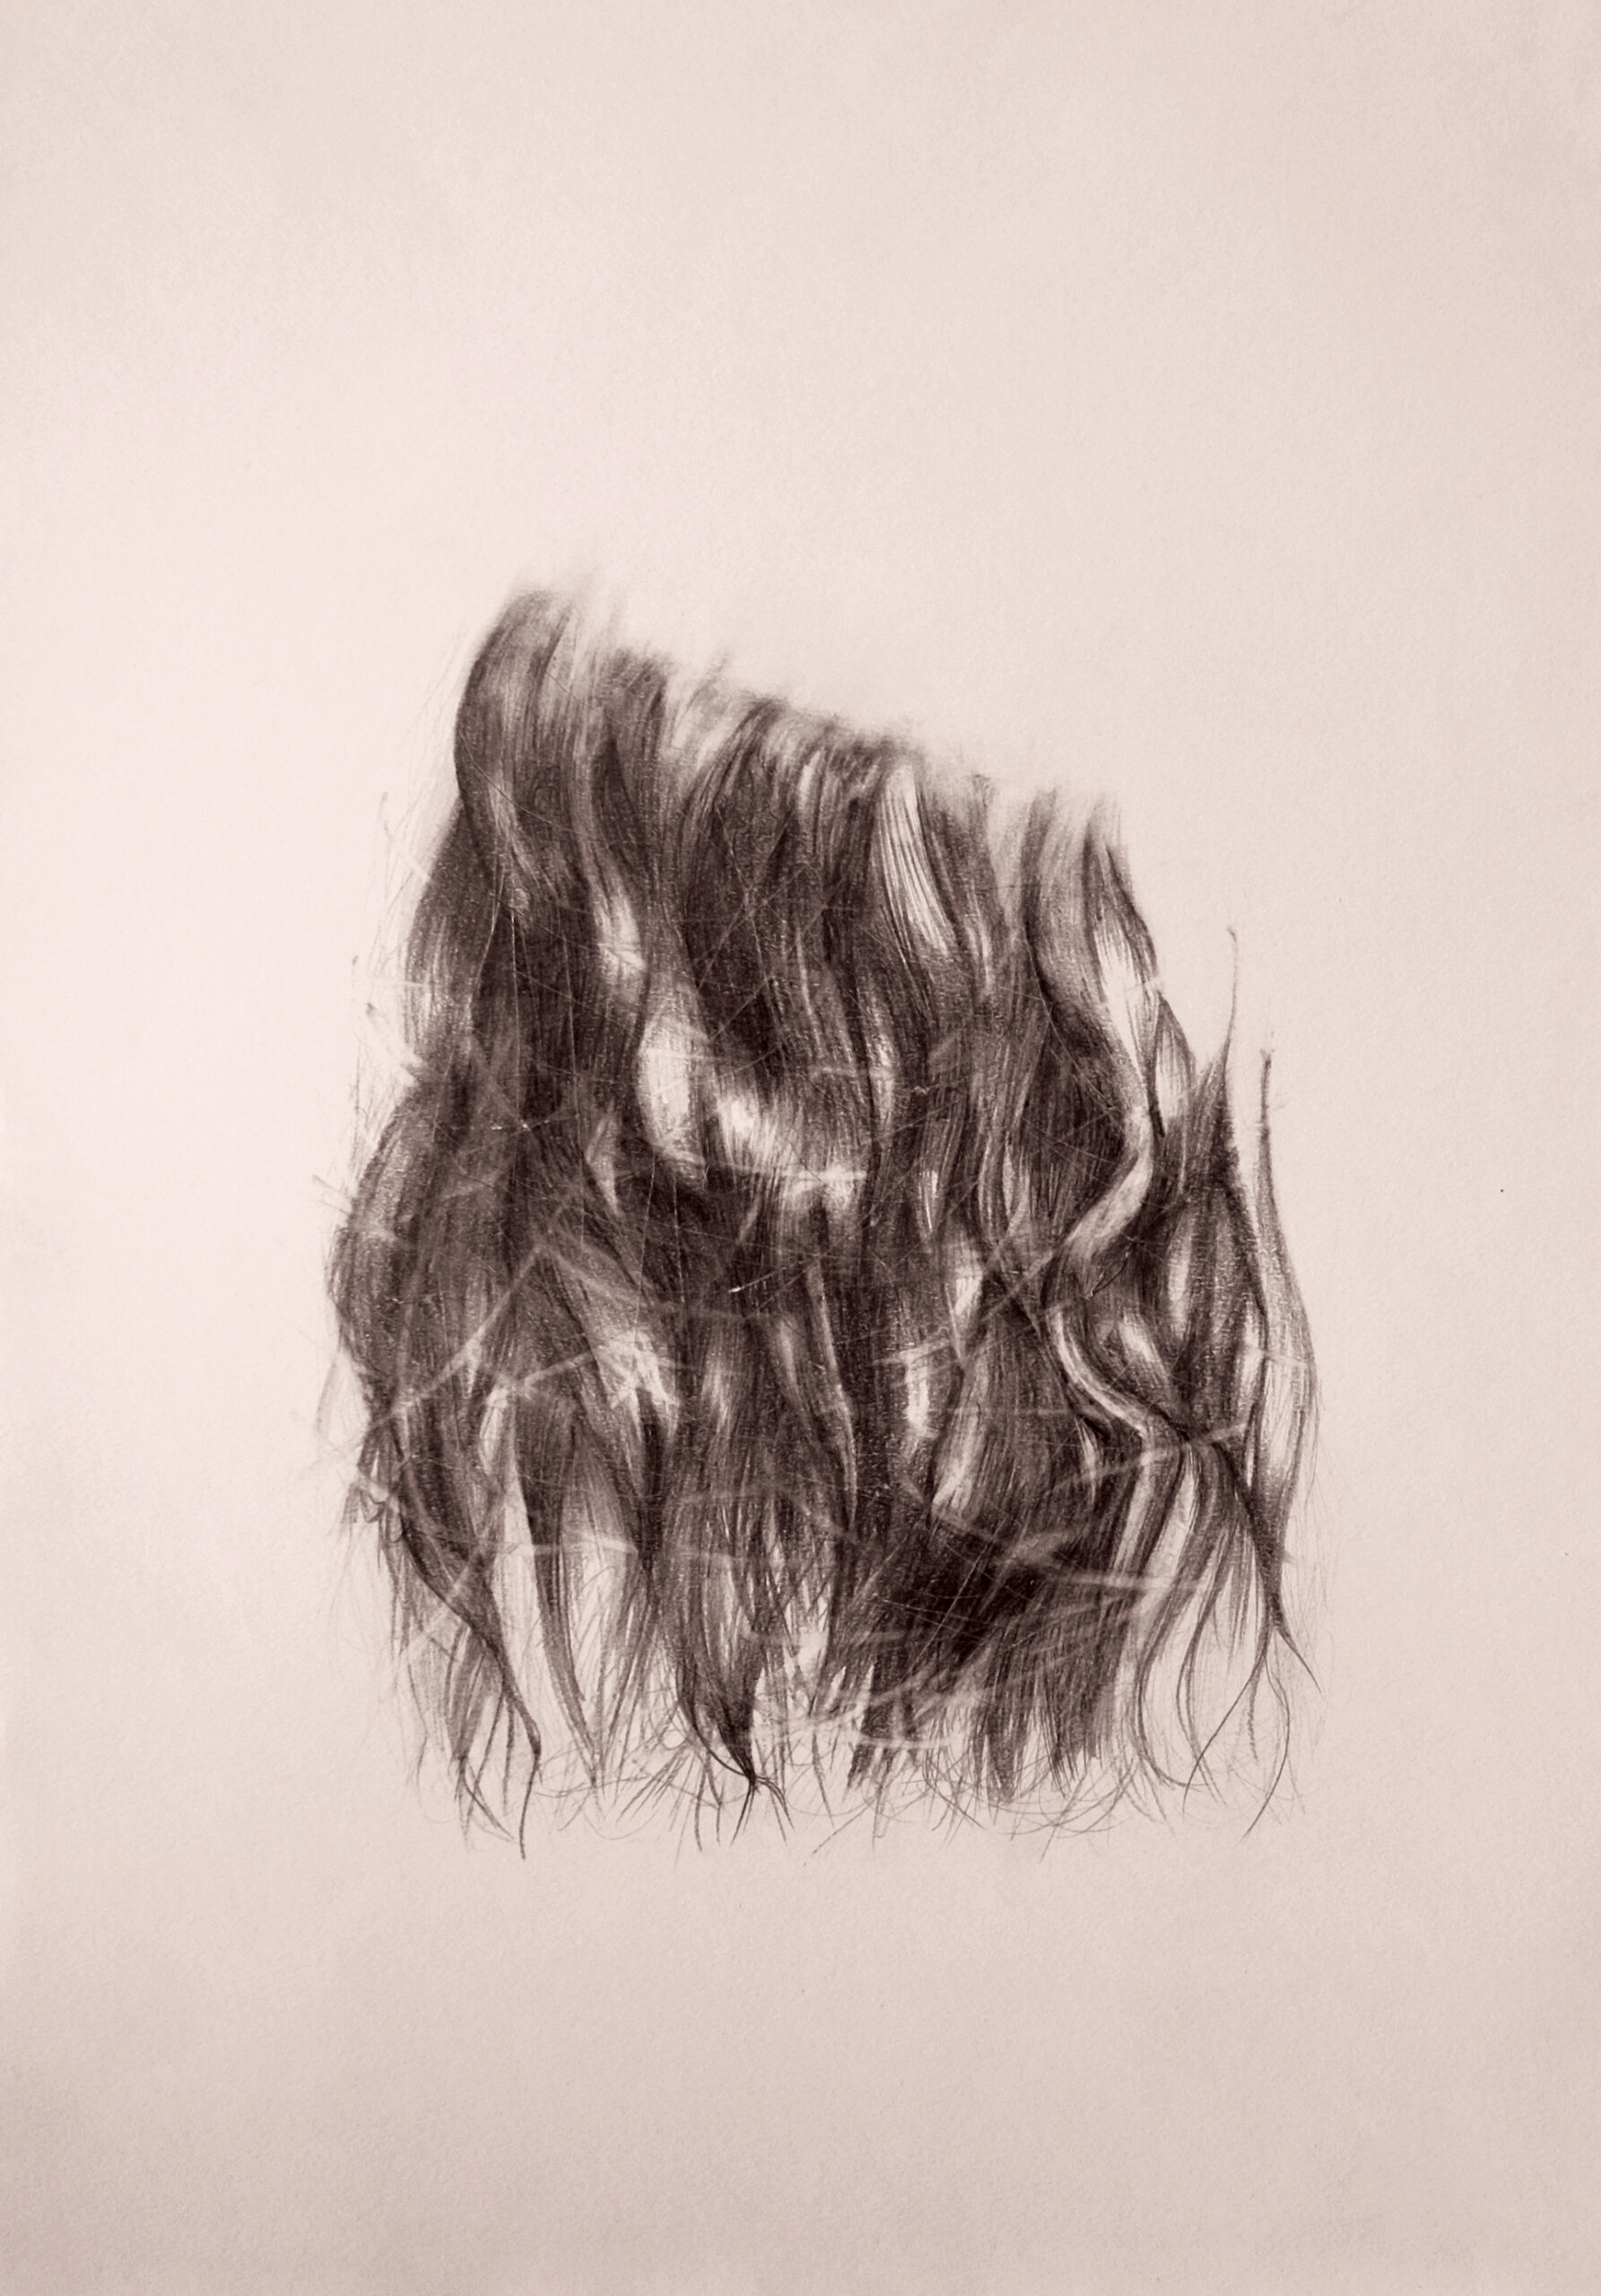 """Floating Hair"" by Samia Soubra"